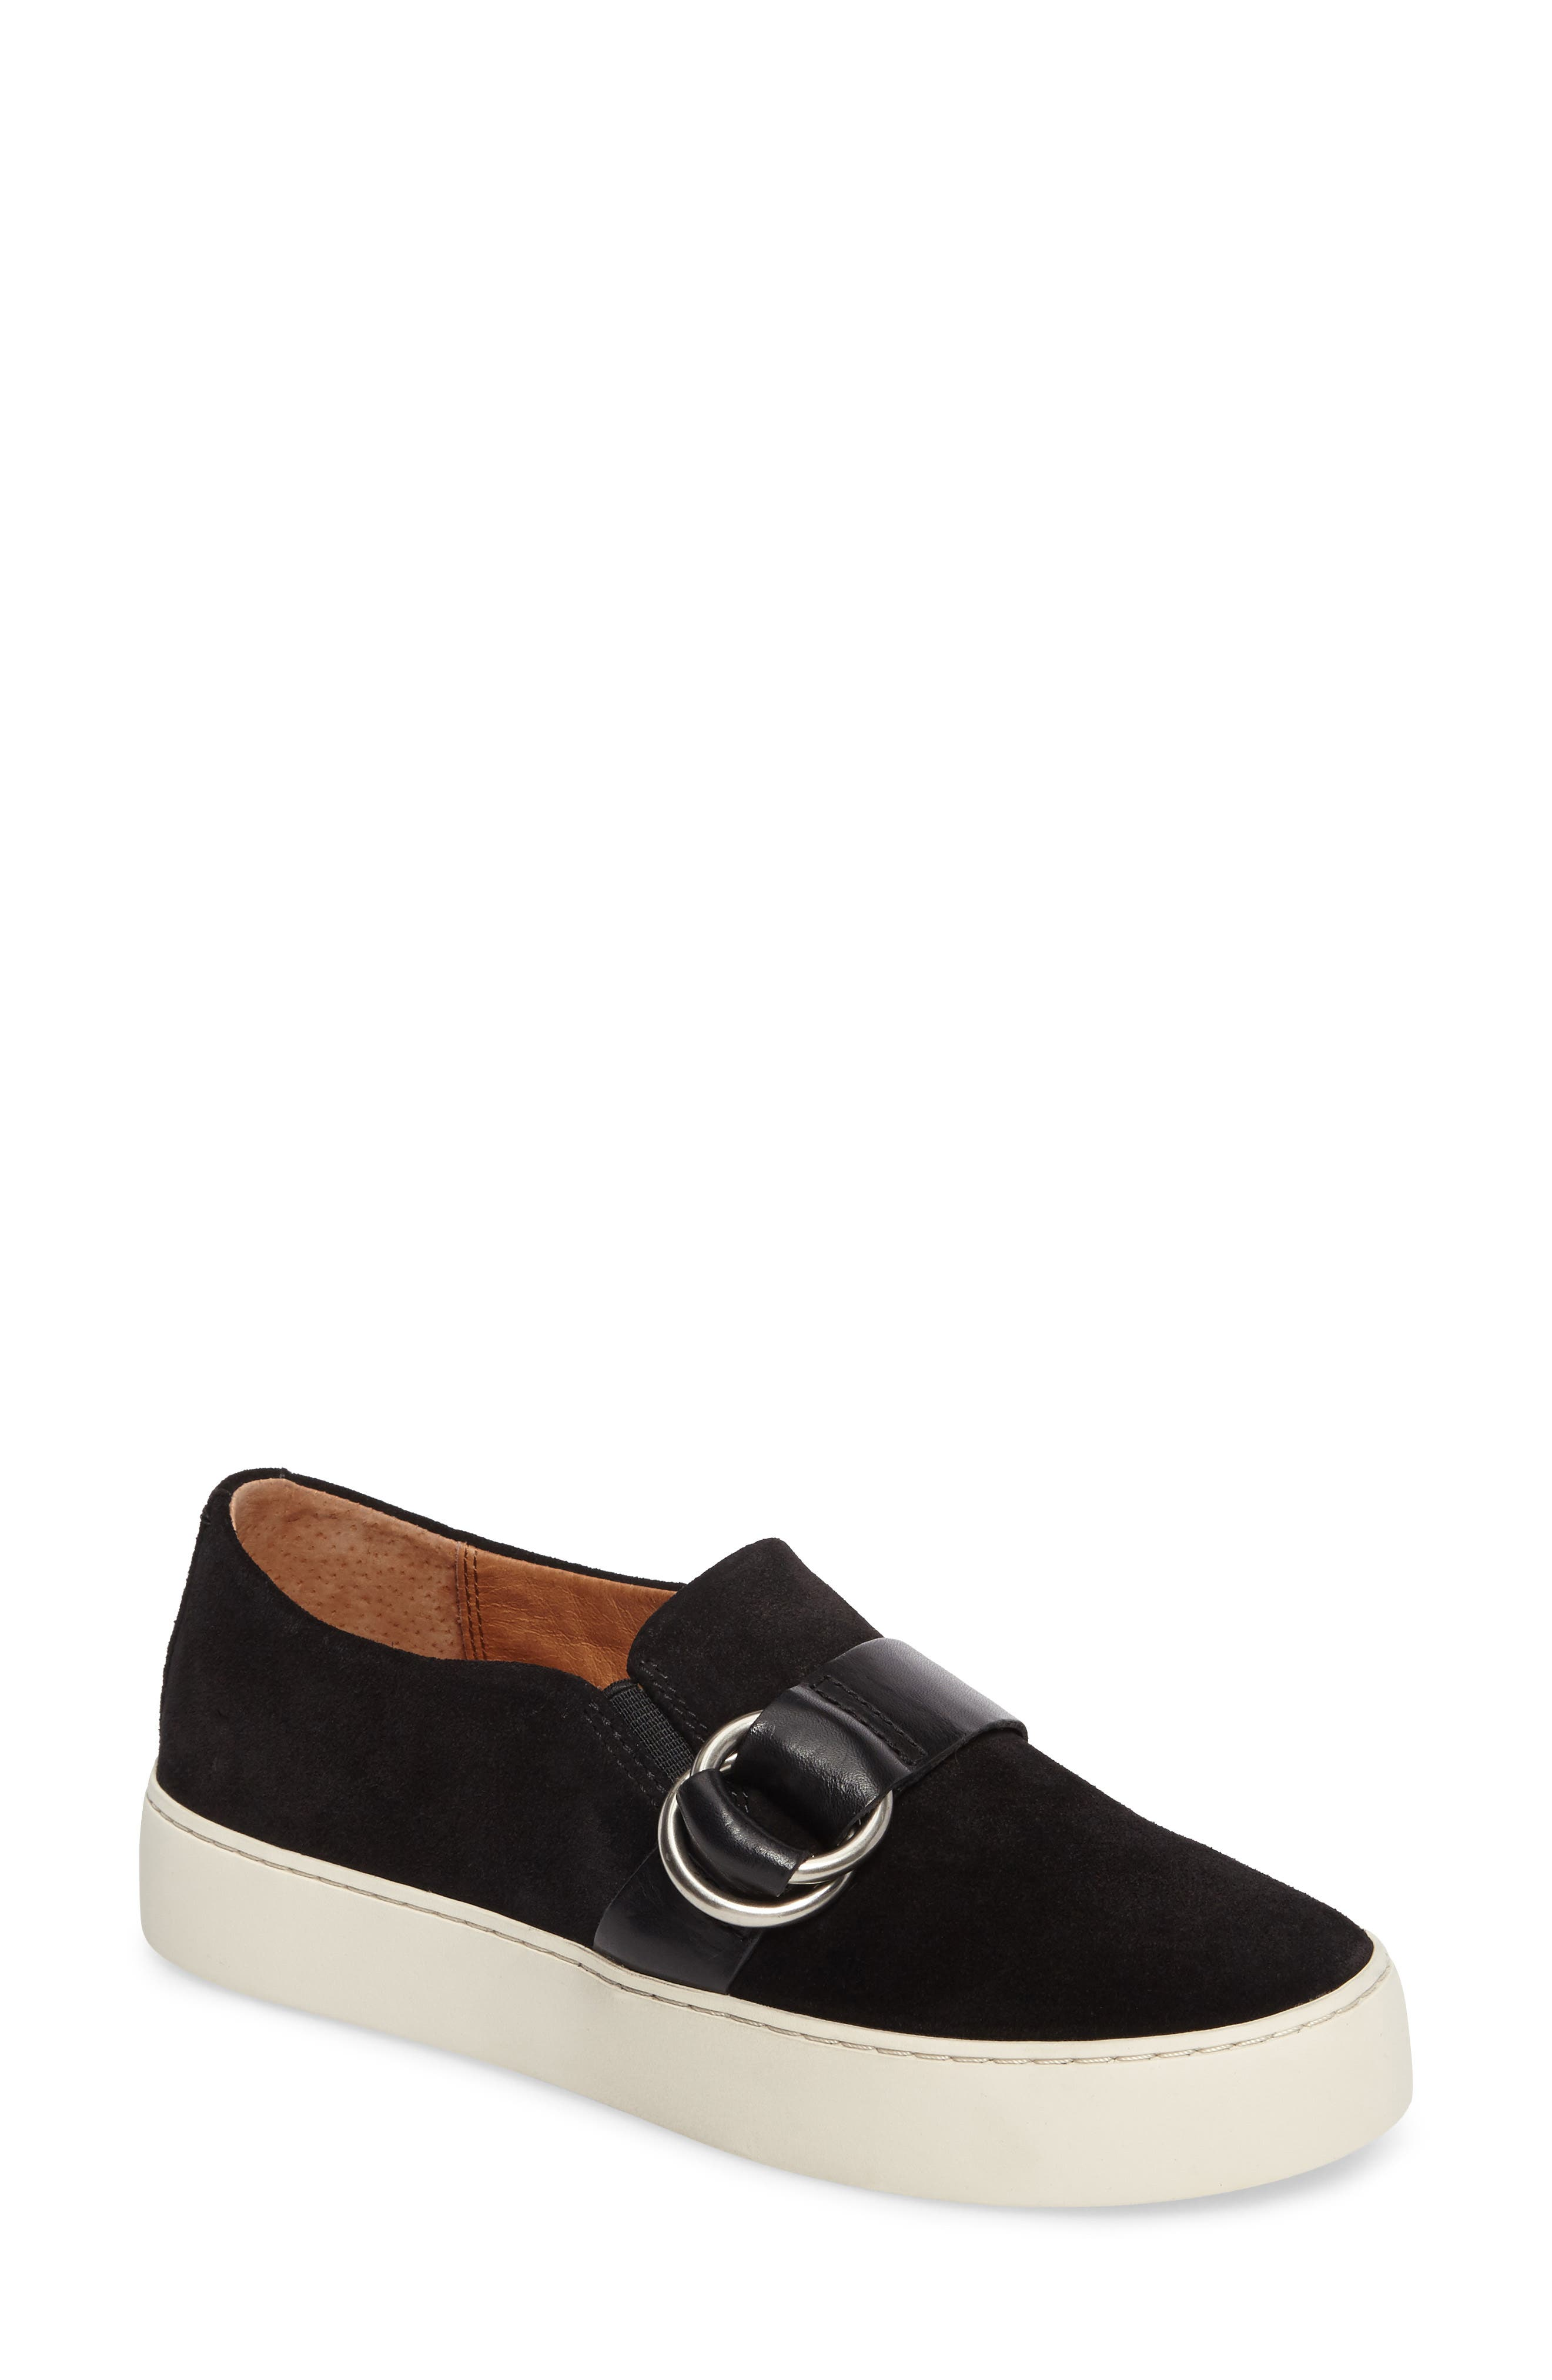 Lena Harness Slip-On Sneaker,                         Main,                         color, 001